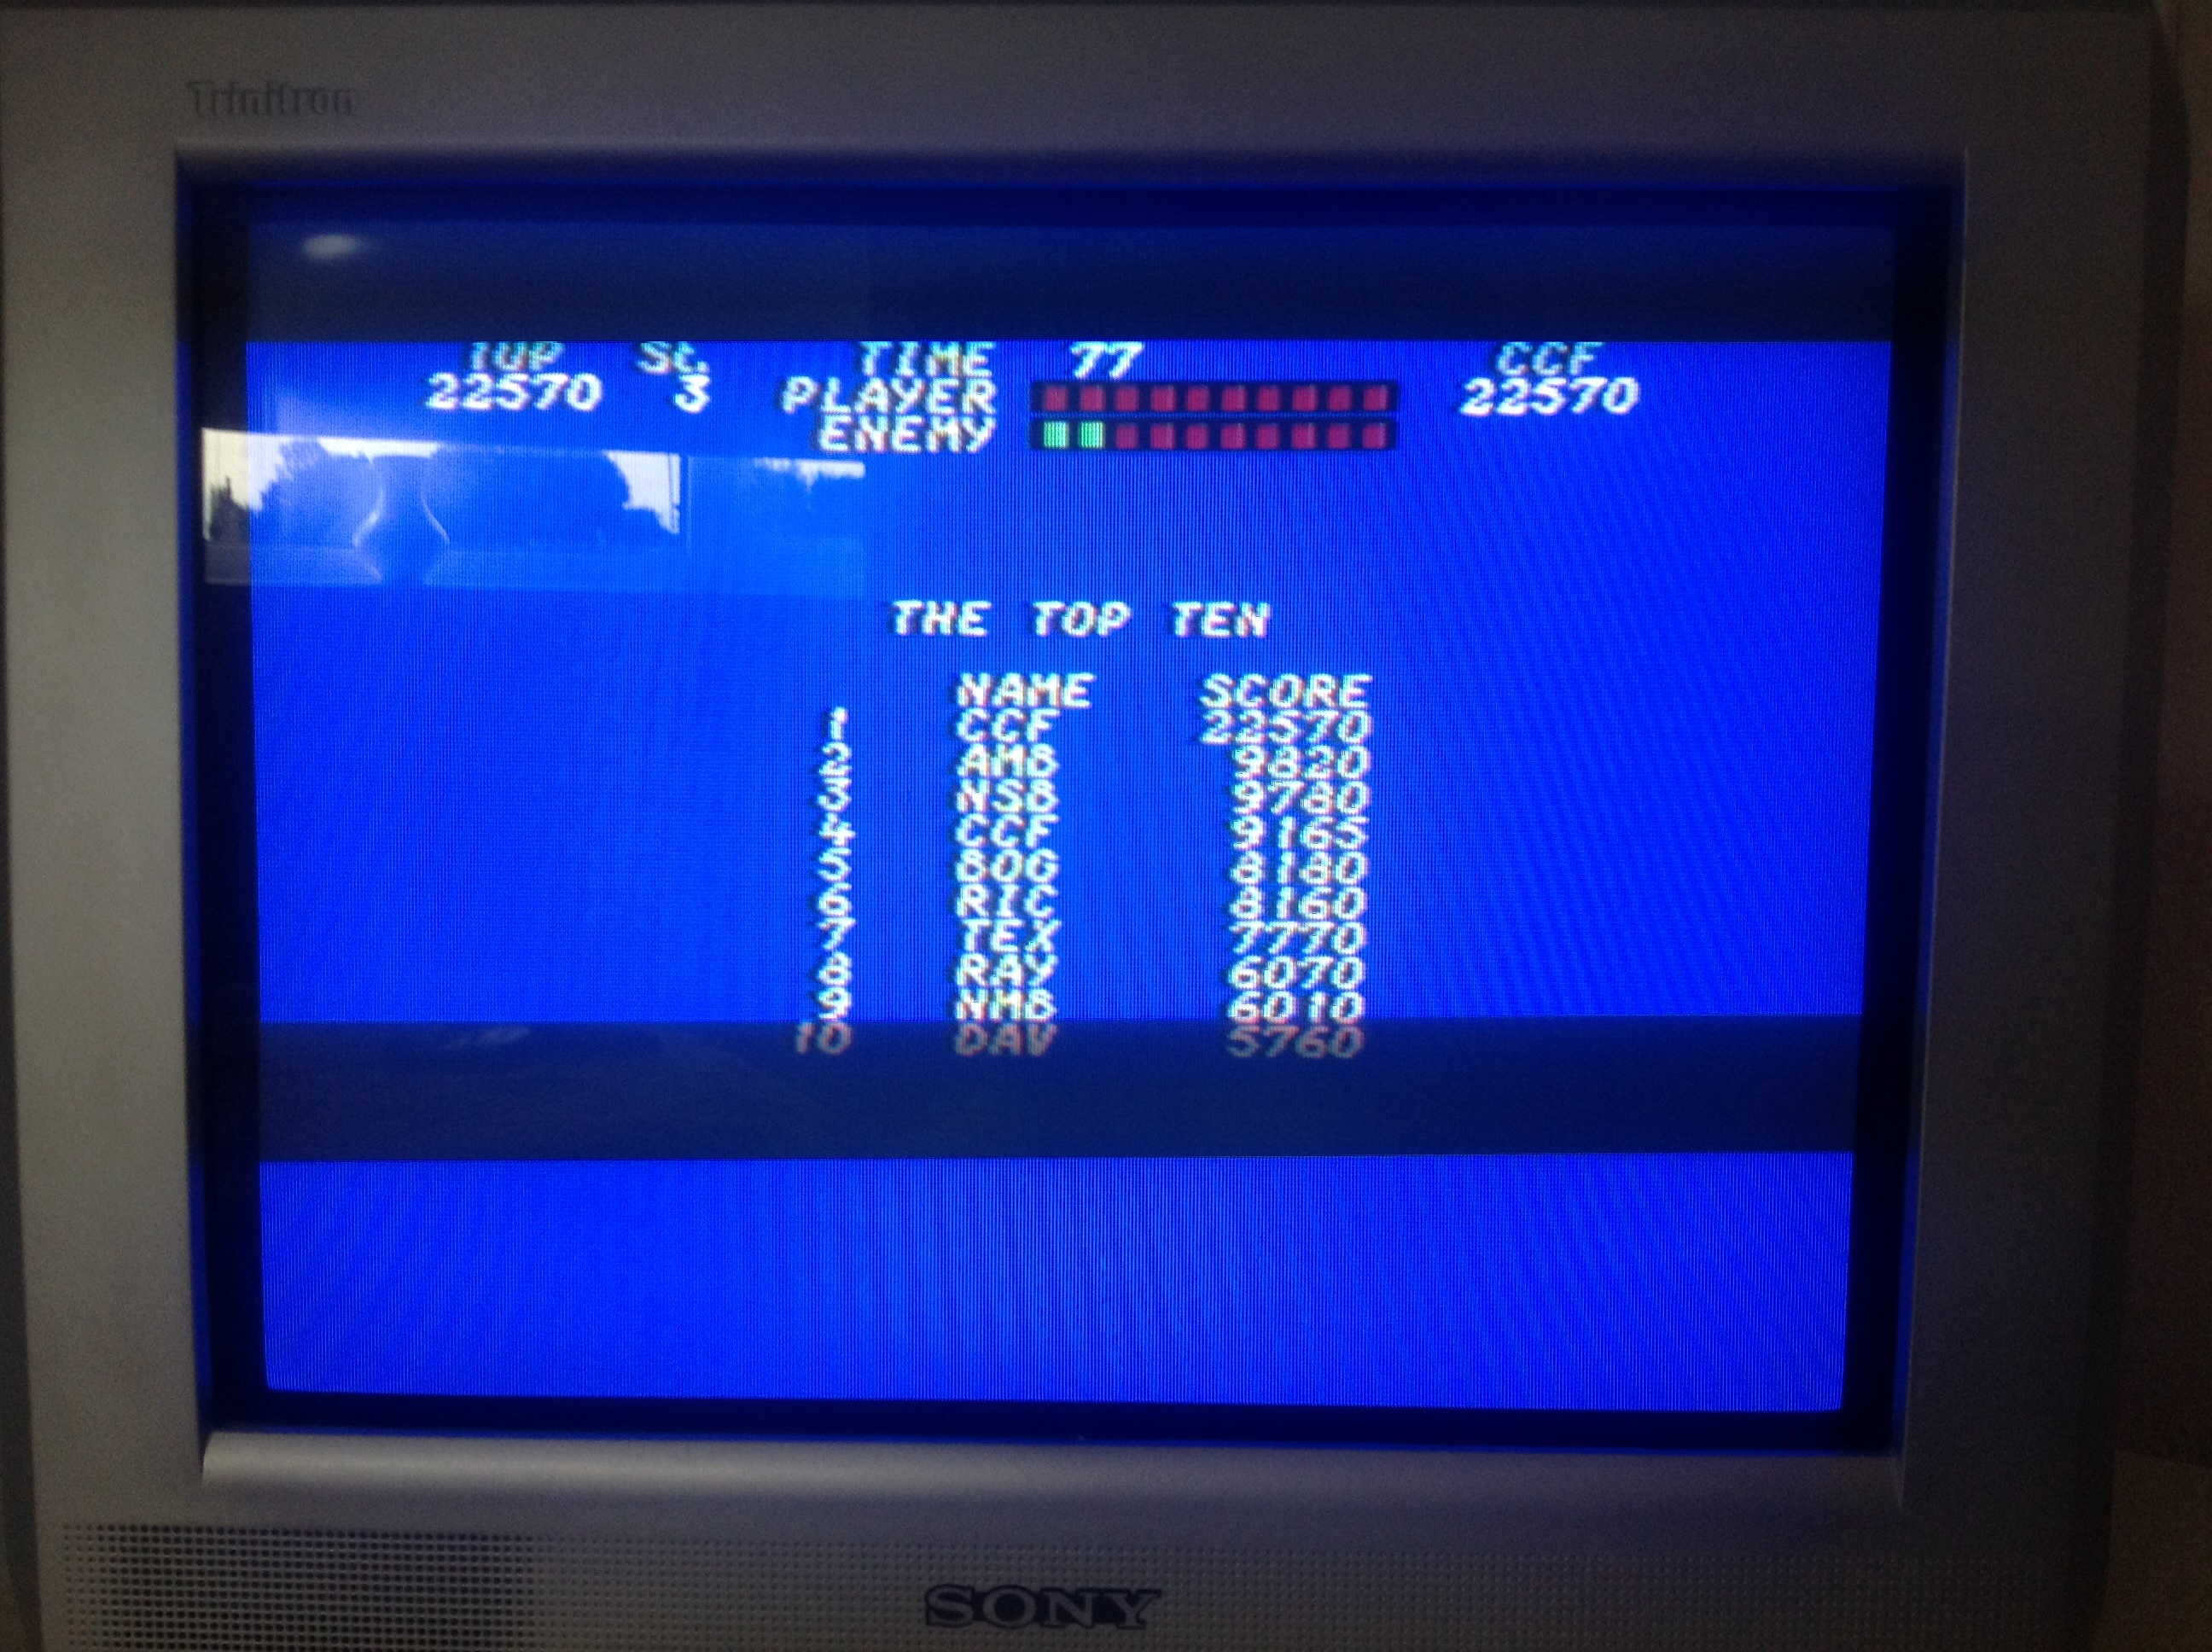 CoCoForest: Street Hassle (Commodore 64) 22,570 points on 2014-08-27 09:50:08